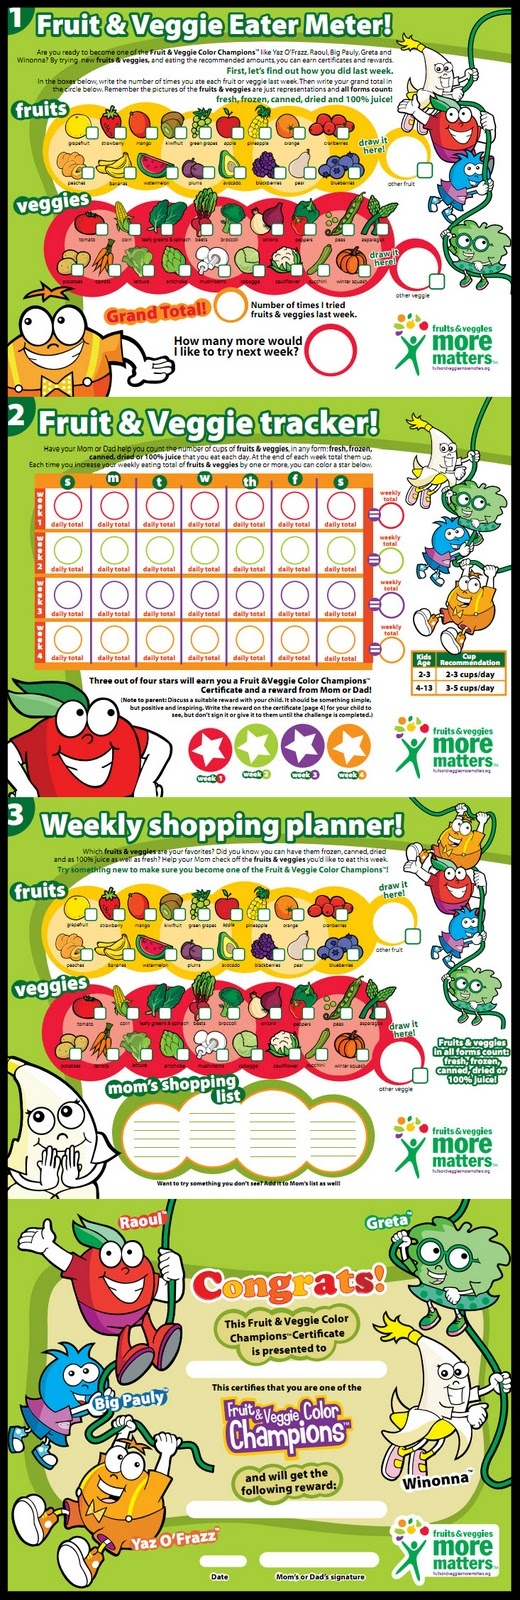 KID-FRIENDLY FRUIT AND VEGGIE EATER METER Healthy Eating Chart from Peas and Crayons